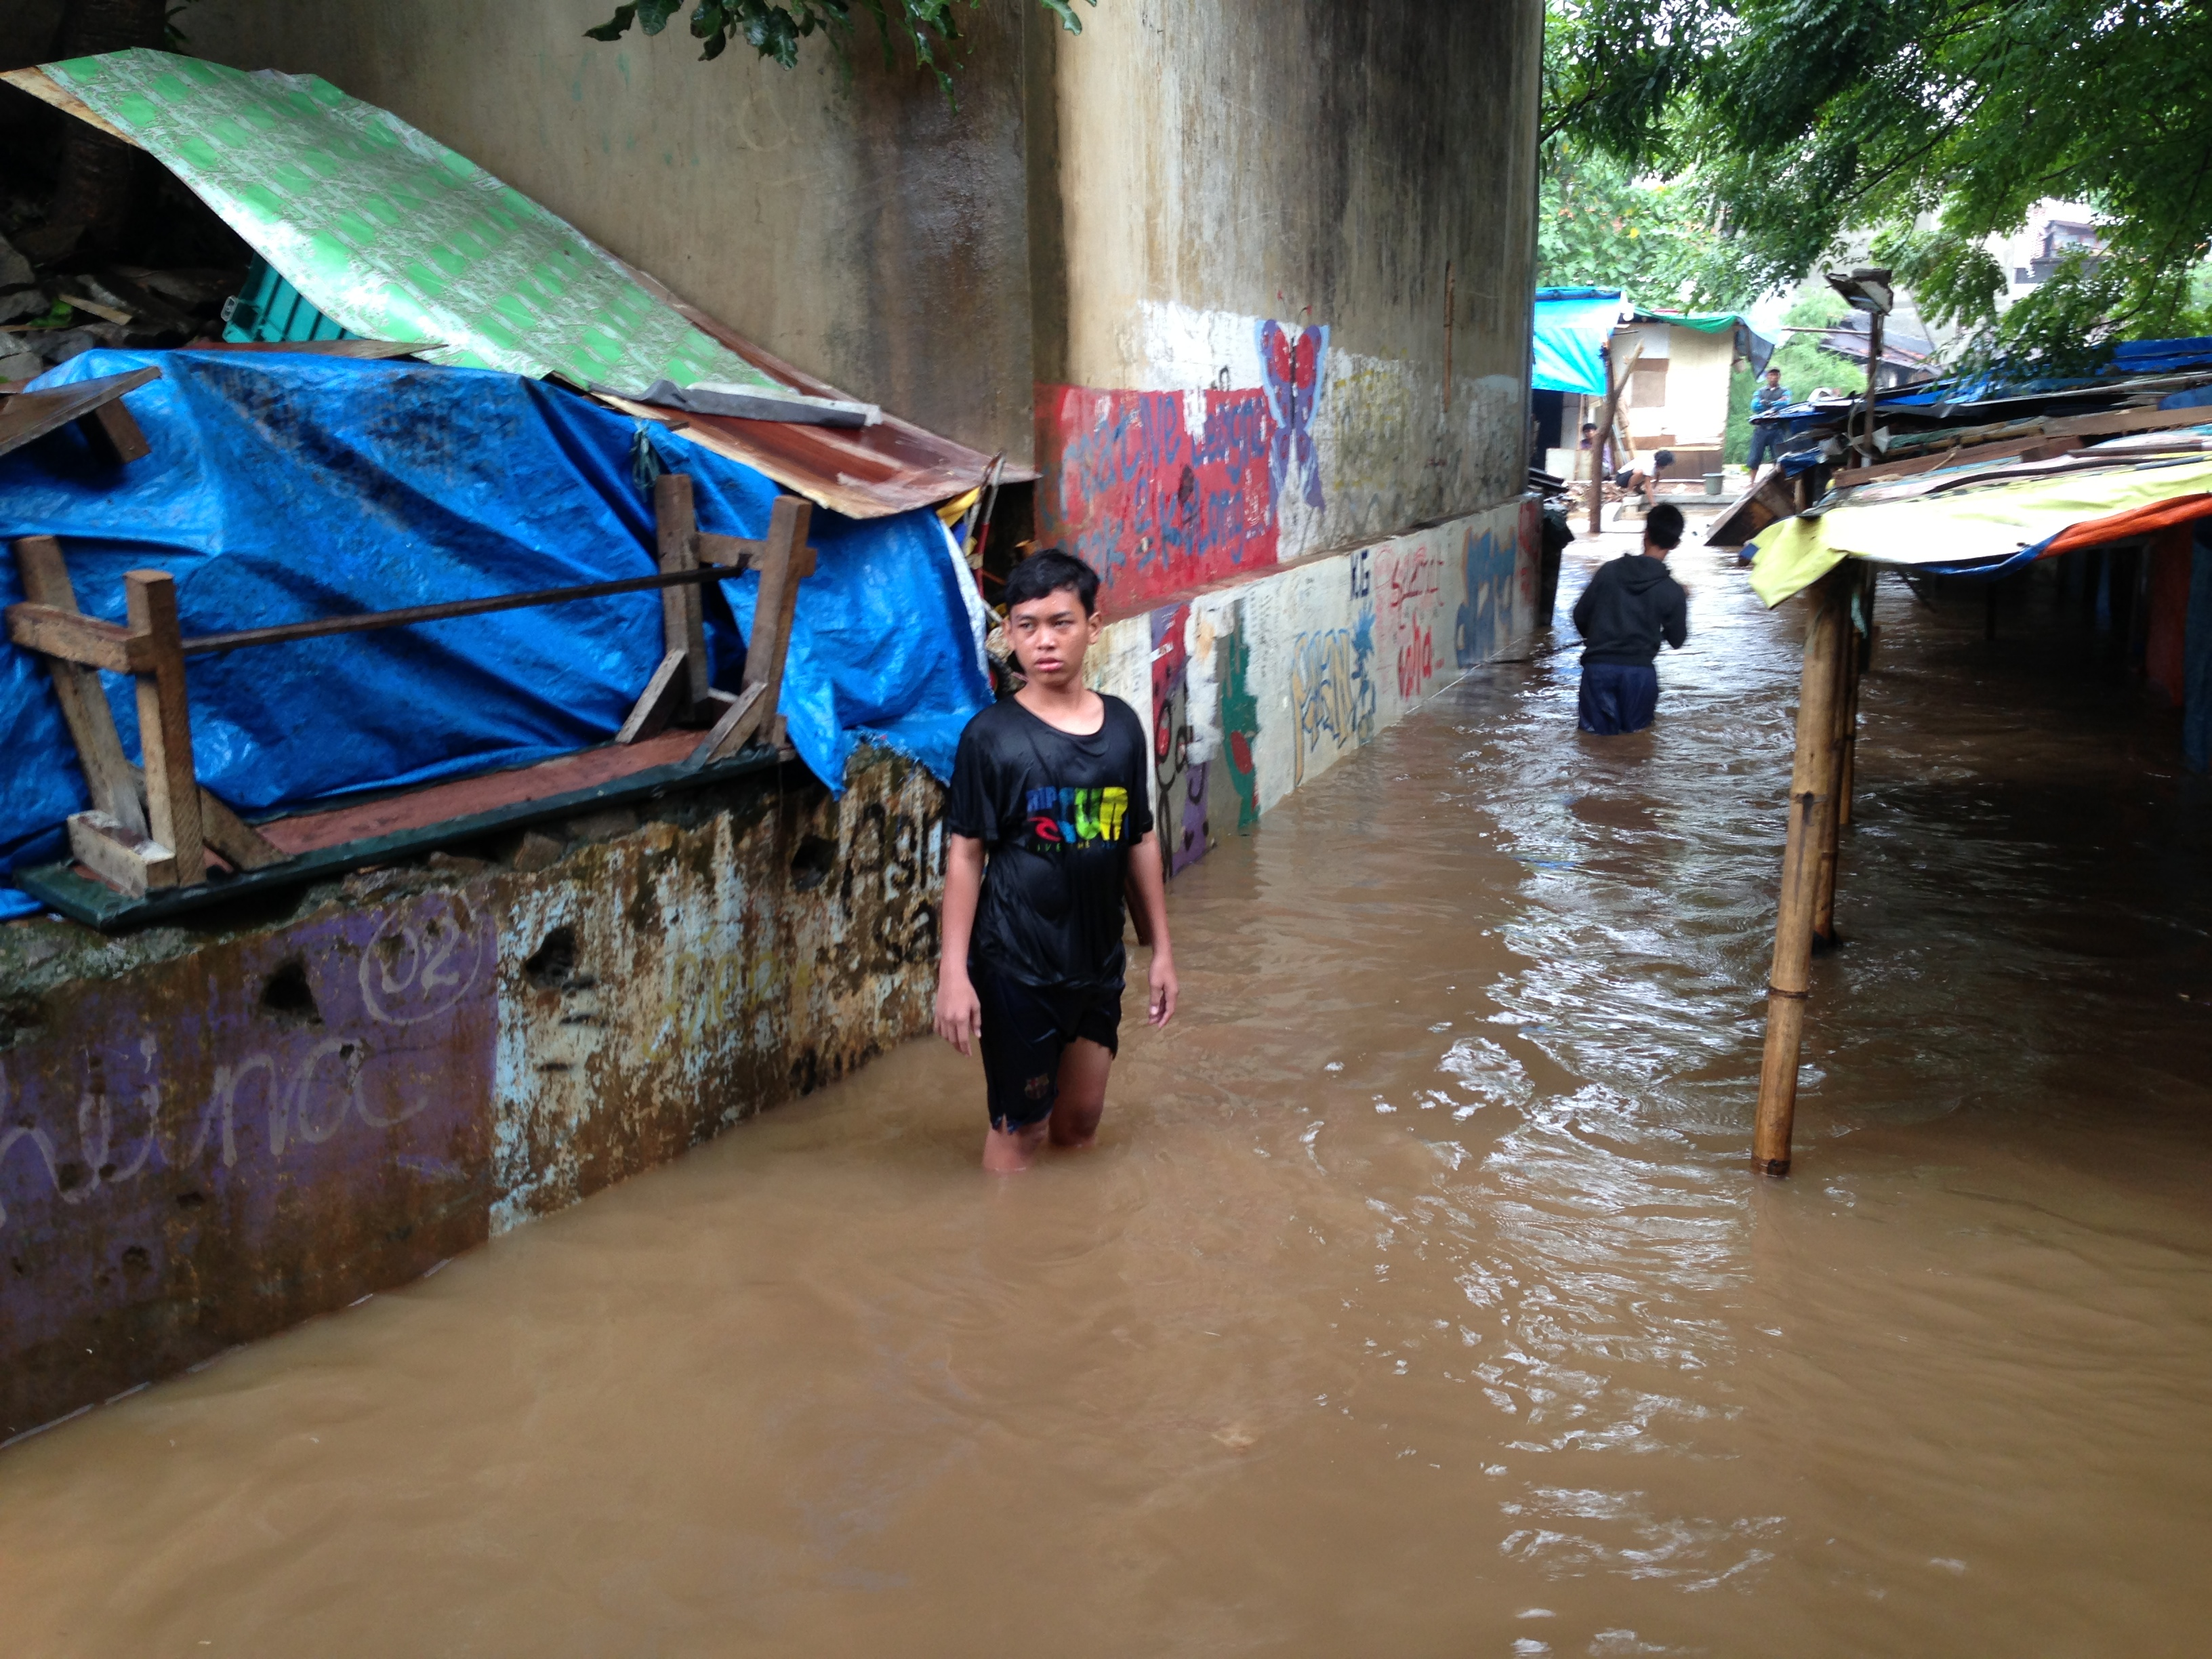 Flooding peaked on 17 January 2013 in Jakarta, Indonesia's capital, highlighting prevention gaps